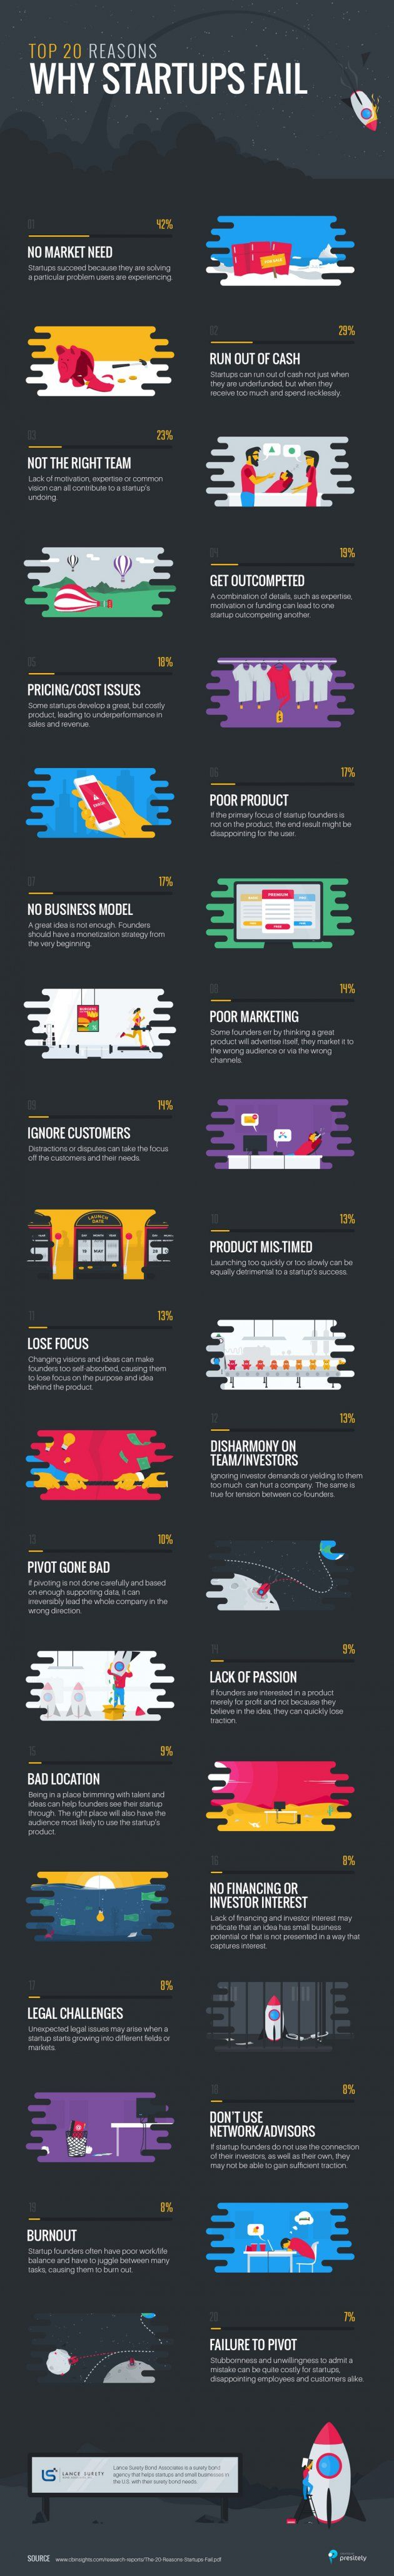 Top 20 Reasons Startups Fail (Infographic) | Inc.com